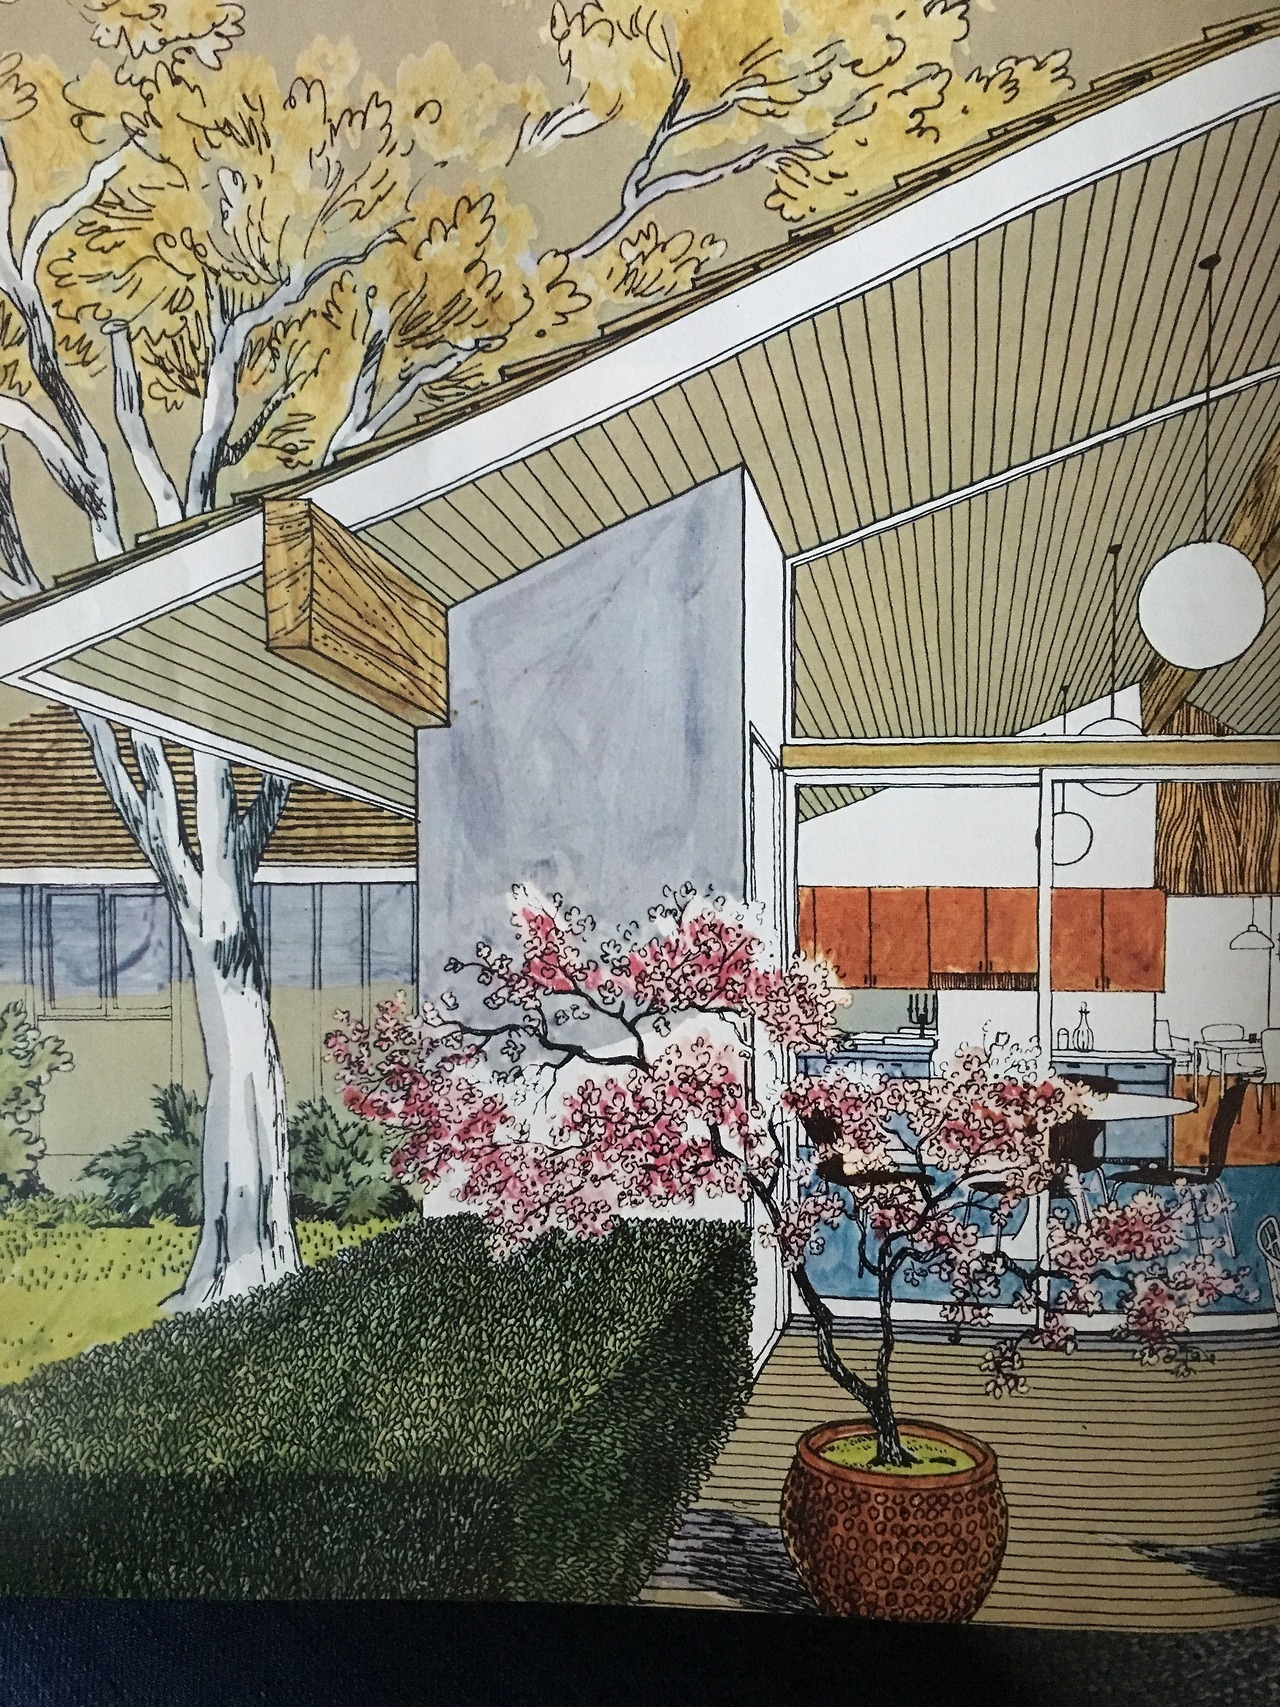 From Better Homes and Gardens. August 1966